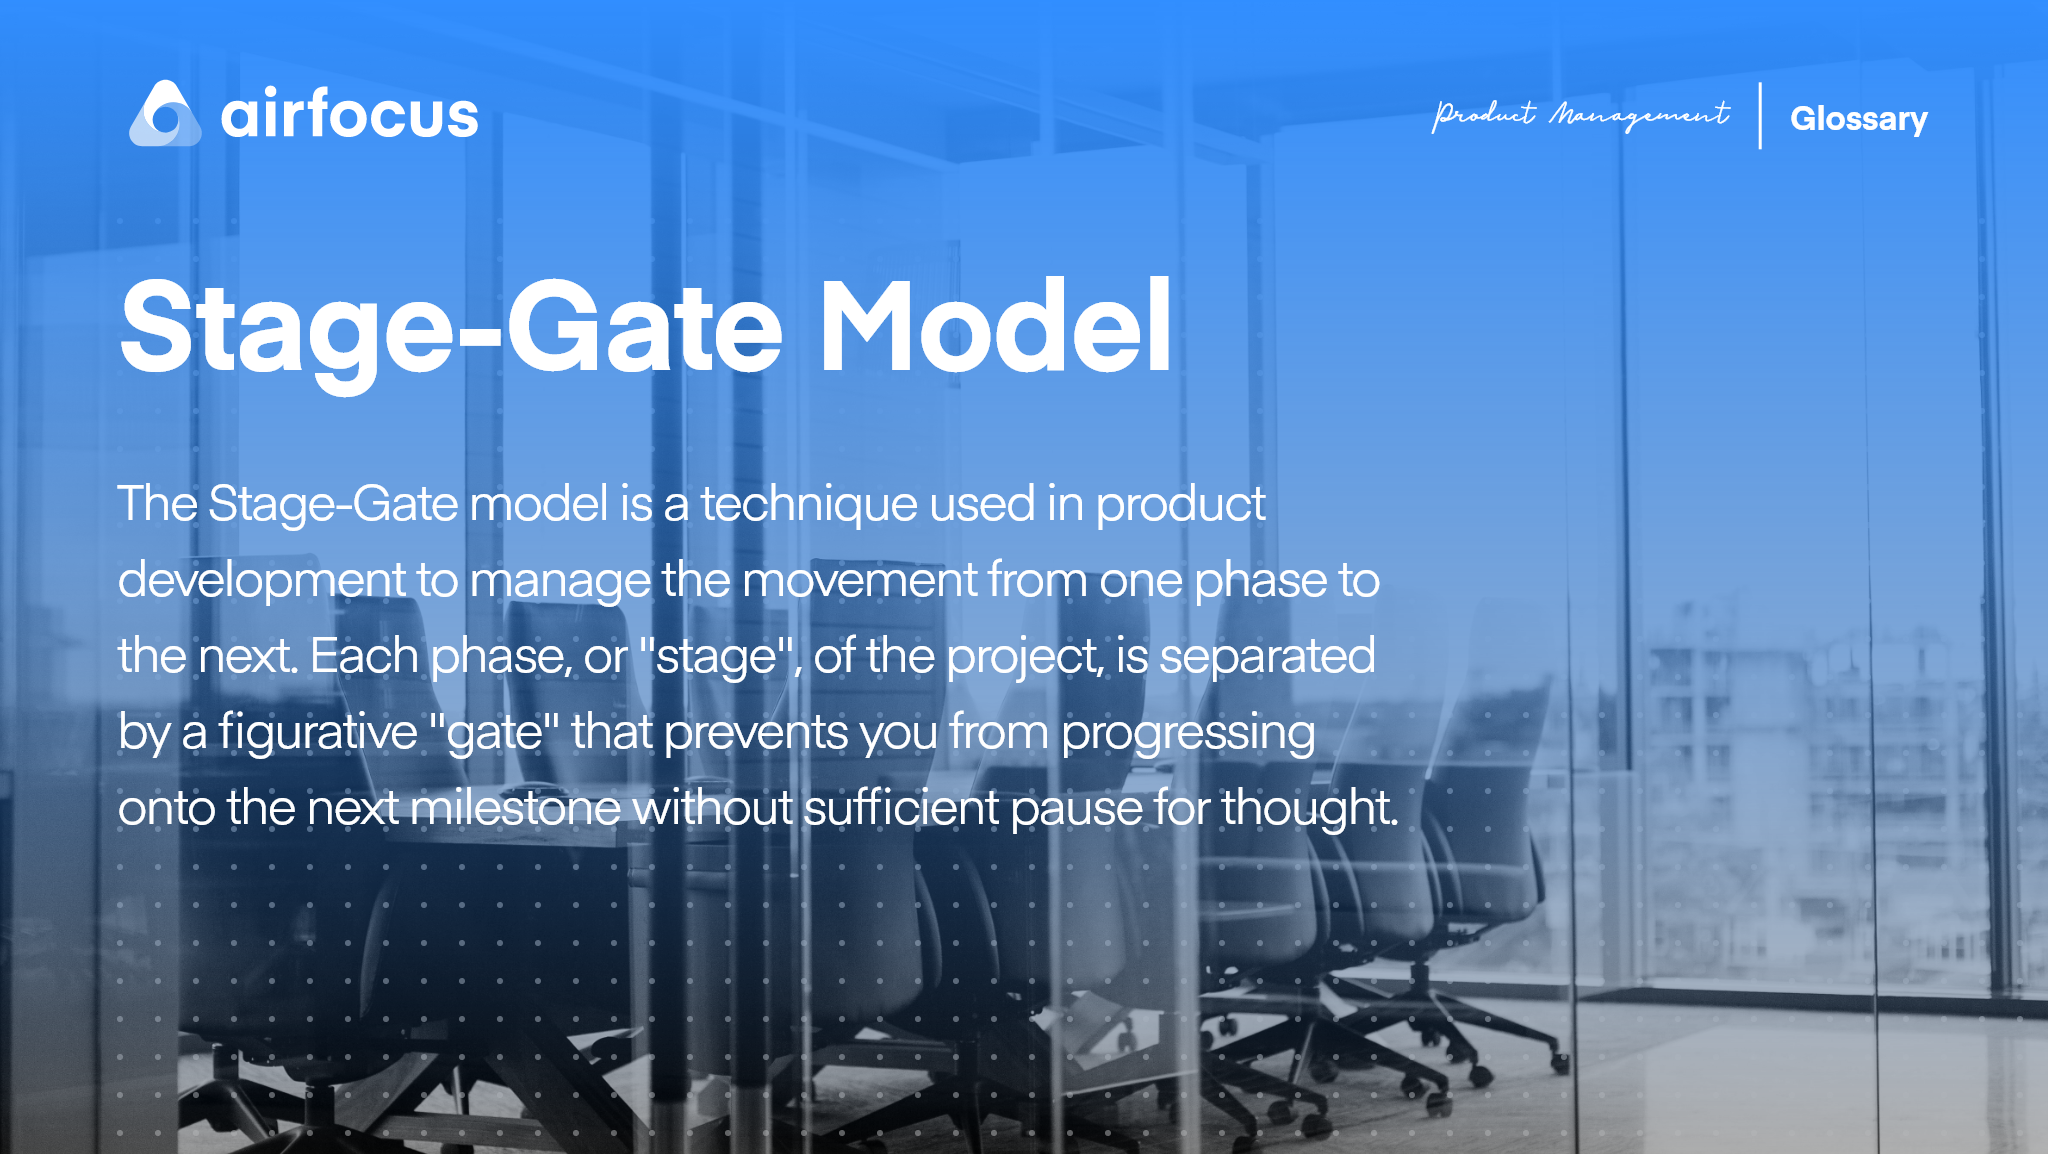 What Is The Stage-Gate Model?